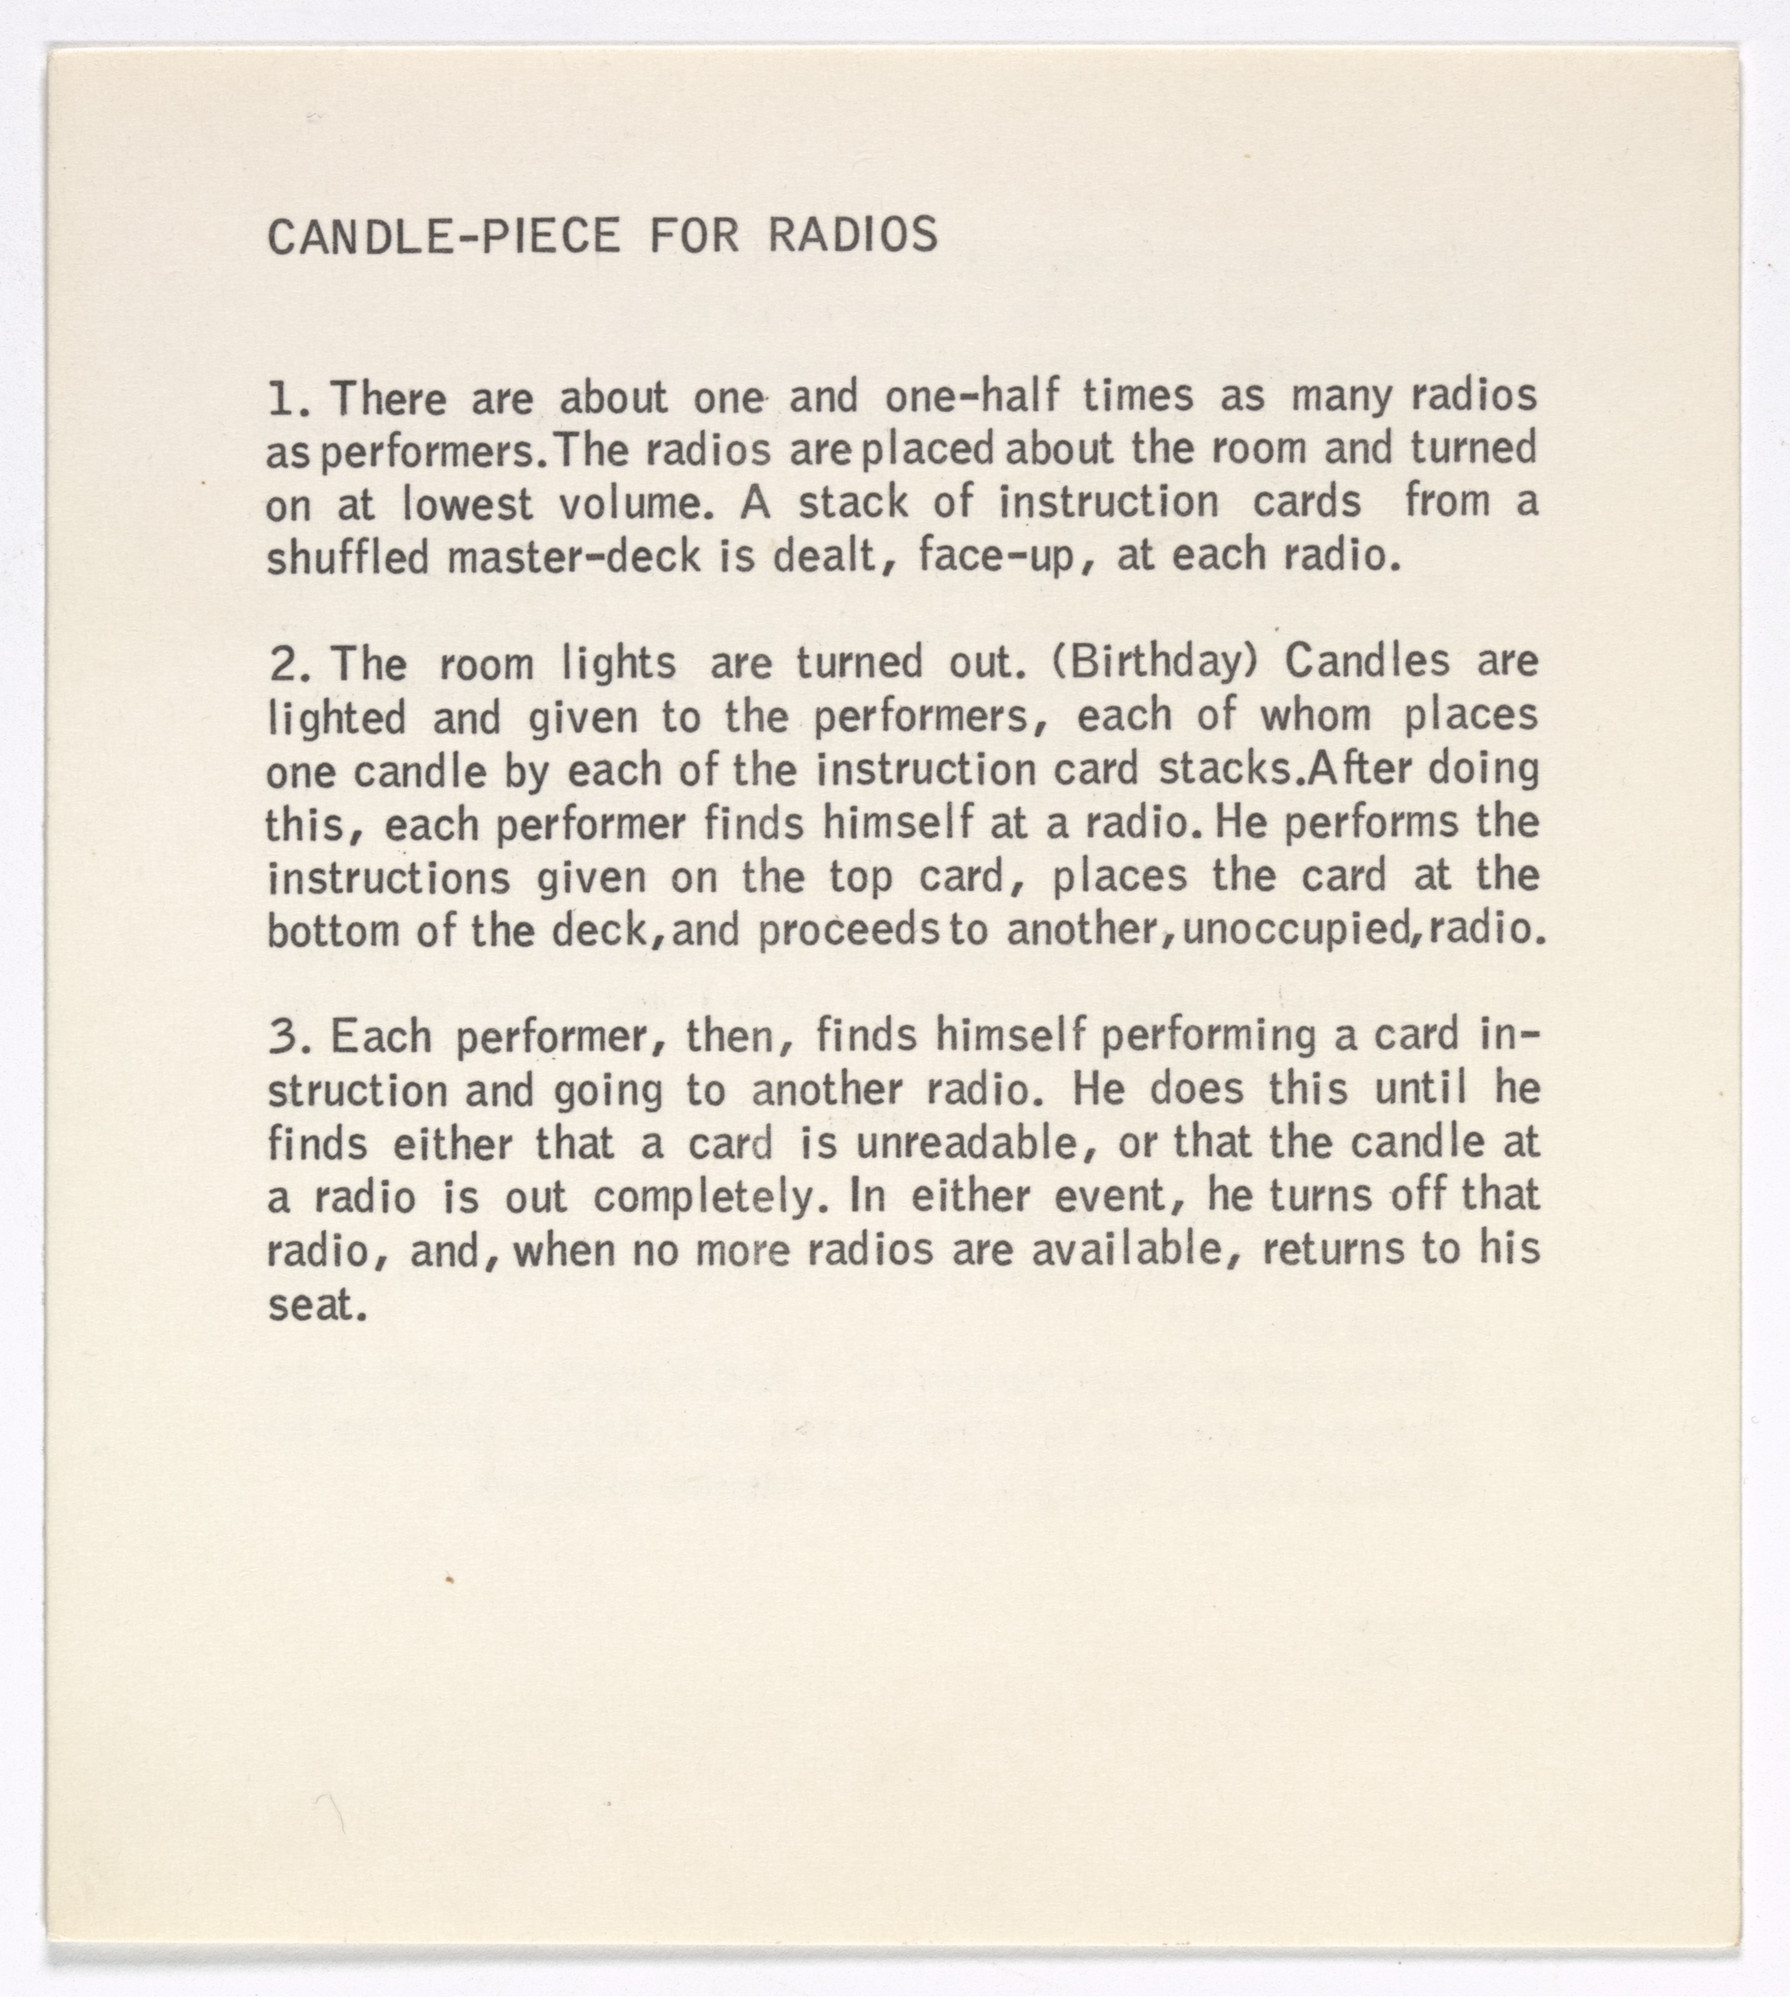 George Brecht. Candle-Piece for Radios from Water Yam. 1963